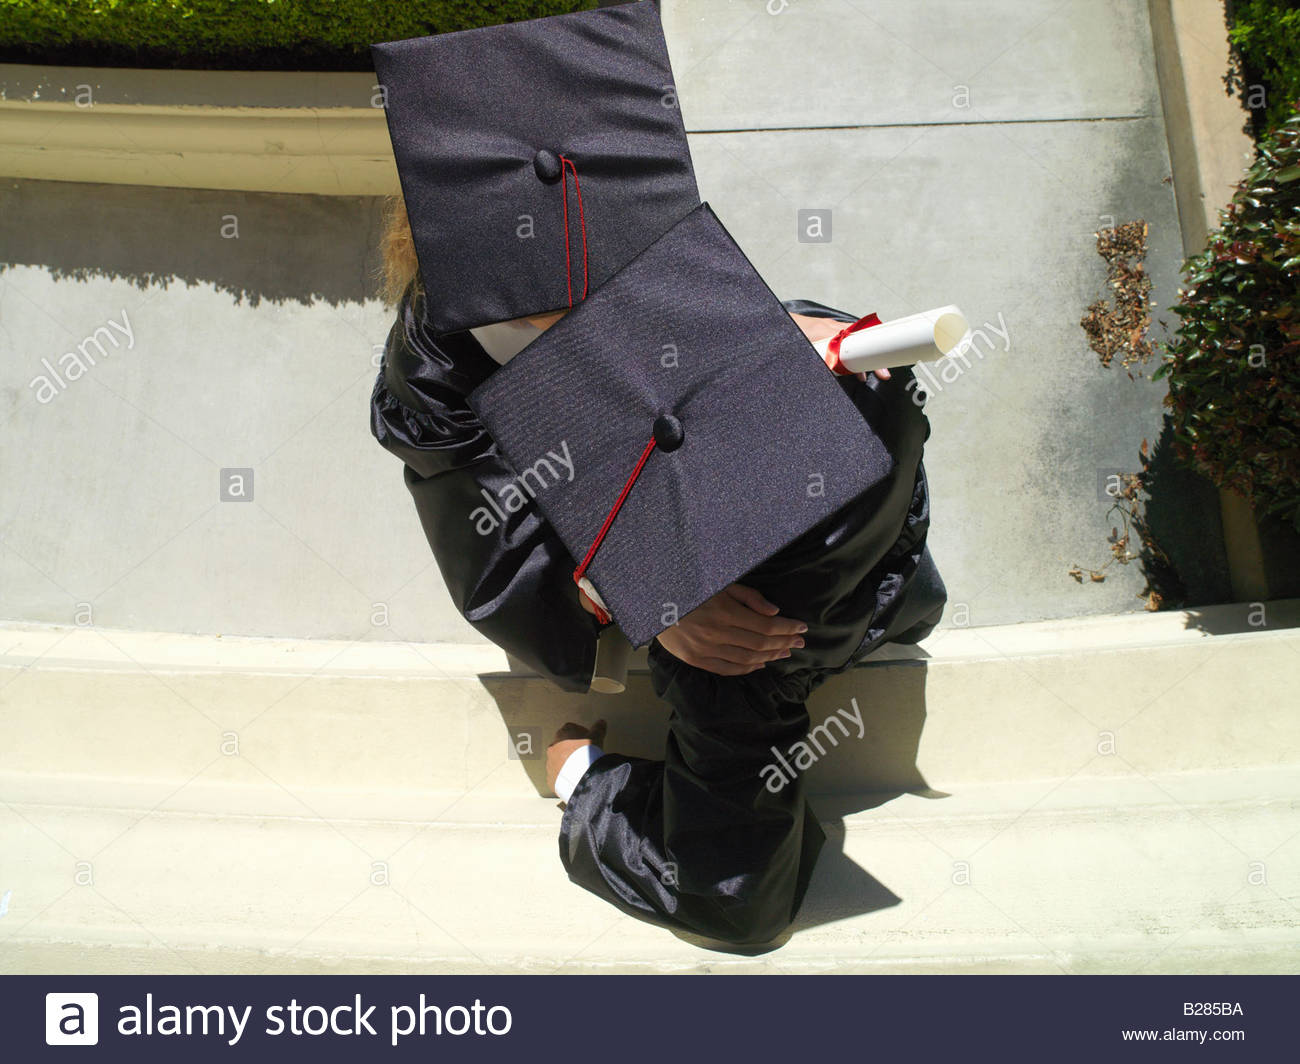 Graduates in caps and gowns in conversation, elevated view - Stock Image